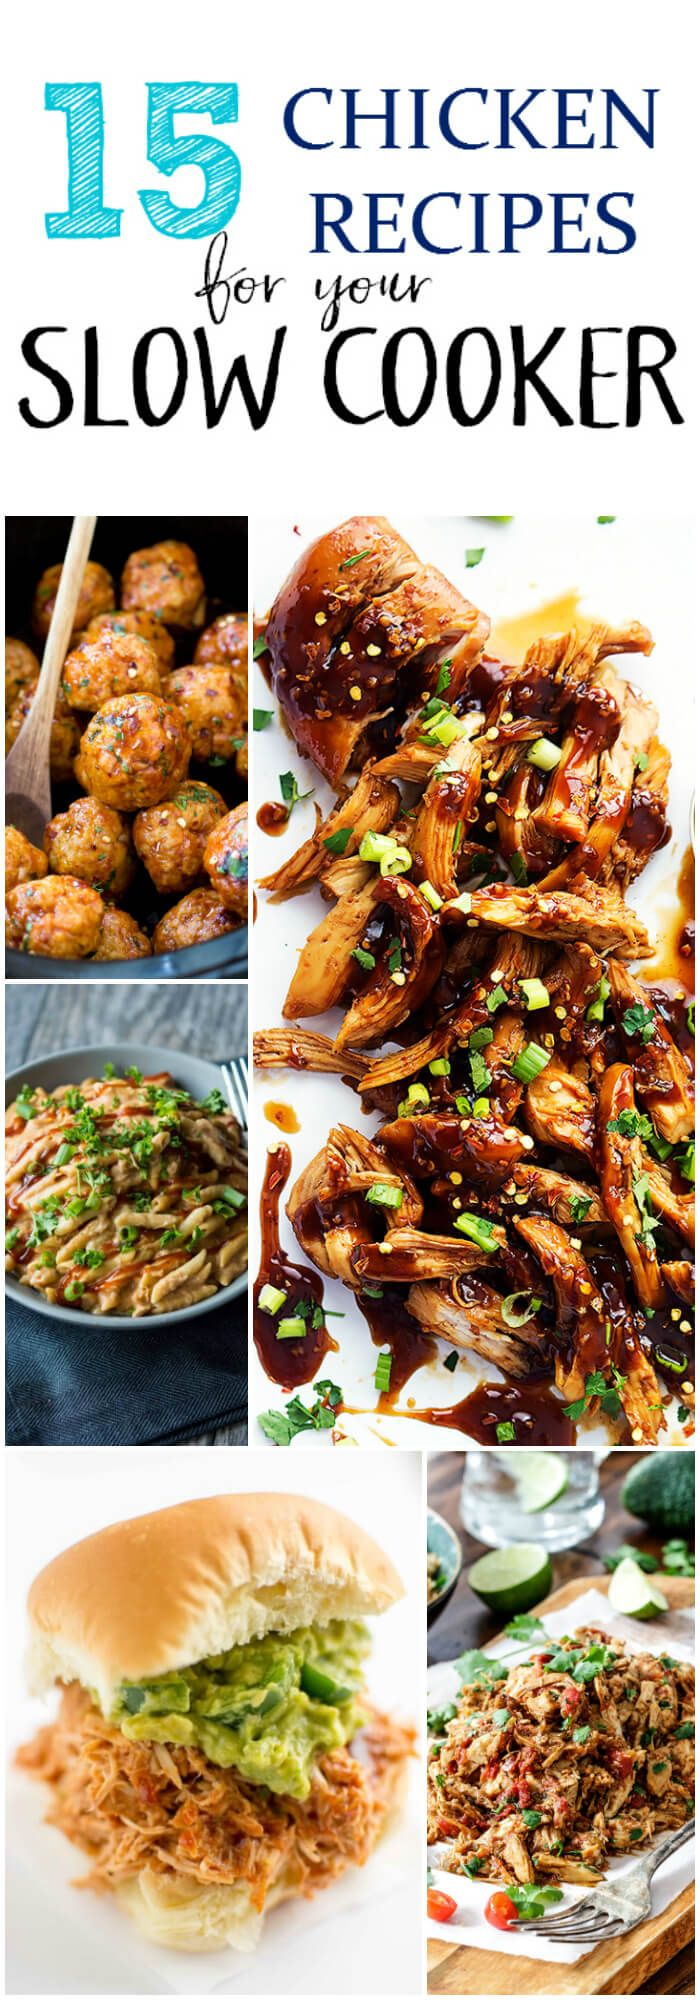 15 Chicken Recipes for your Slow Cooker